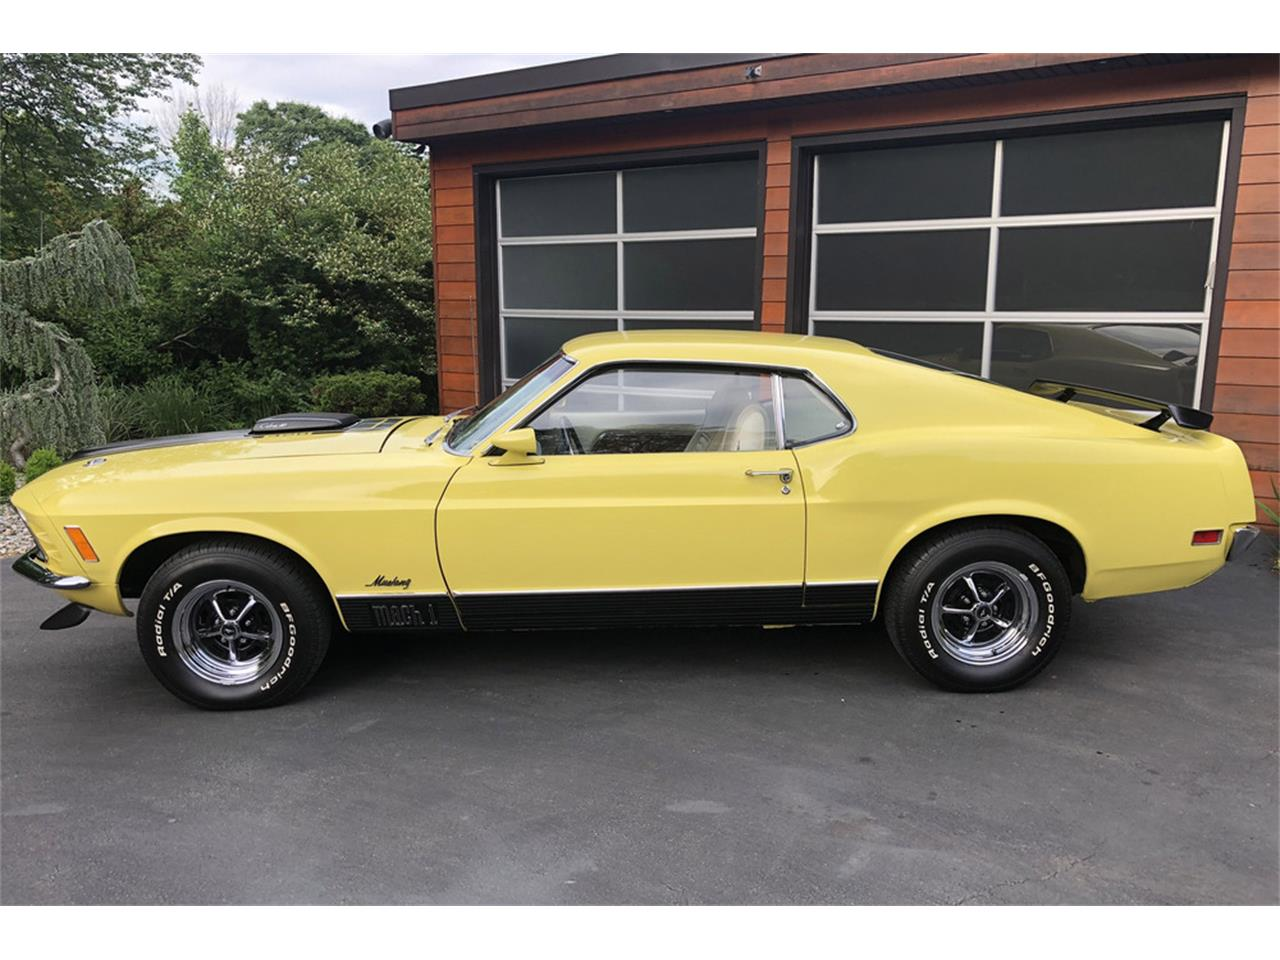 Large Picture of '70 Mustang Mach 1 located in Connecticut Auction Vehicle - QDQS